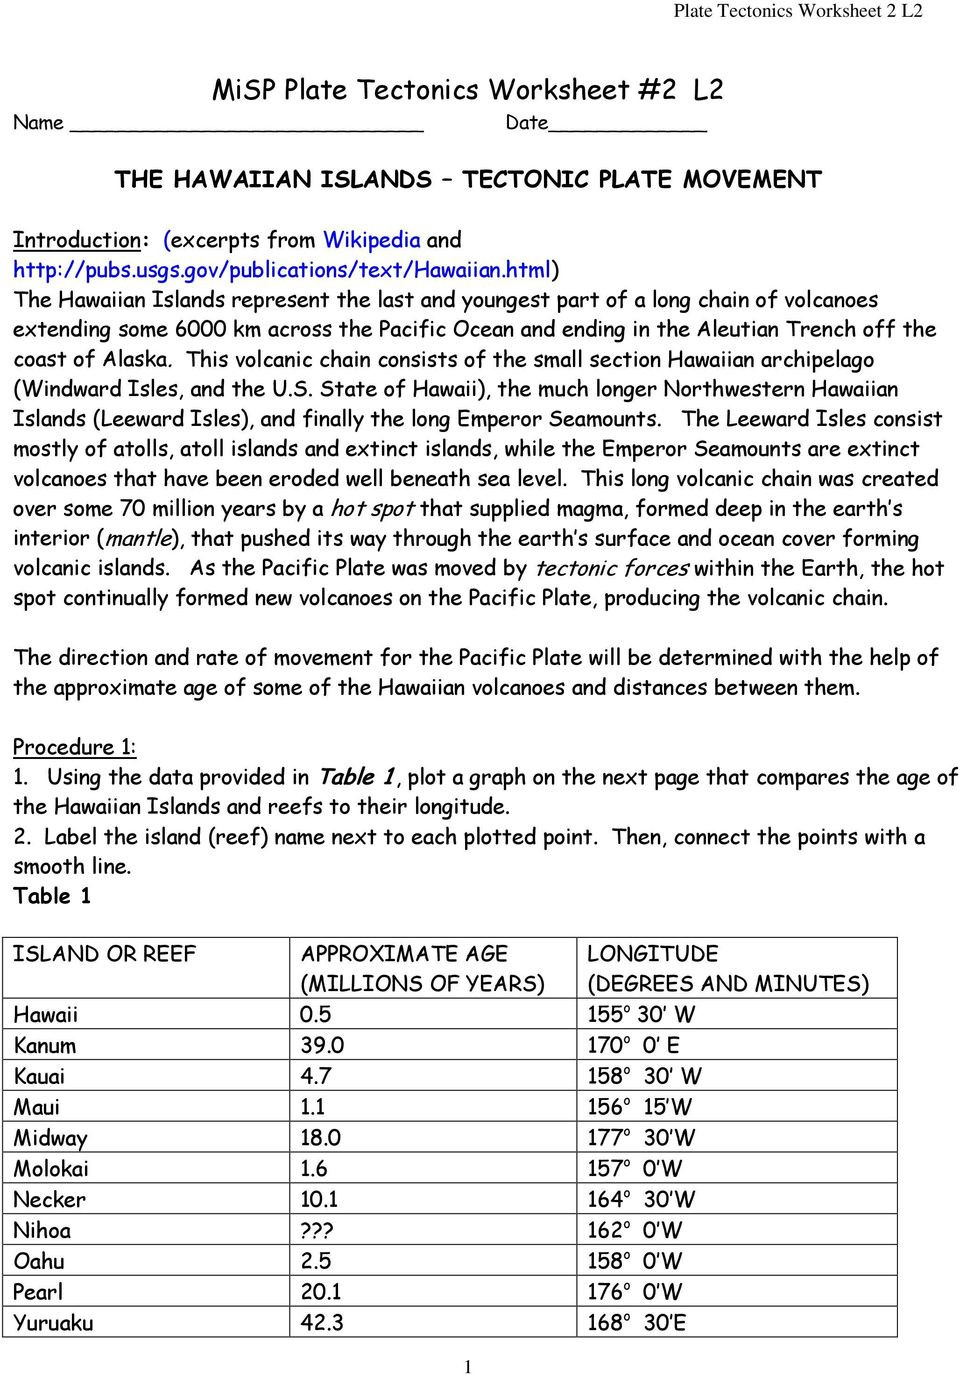 Plate Tectonics Worksheet 6th Grade Misp Plate Tectonics Worksheet 2 L2 Pdf Free Download